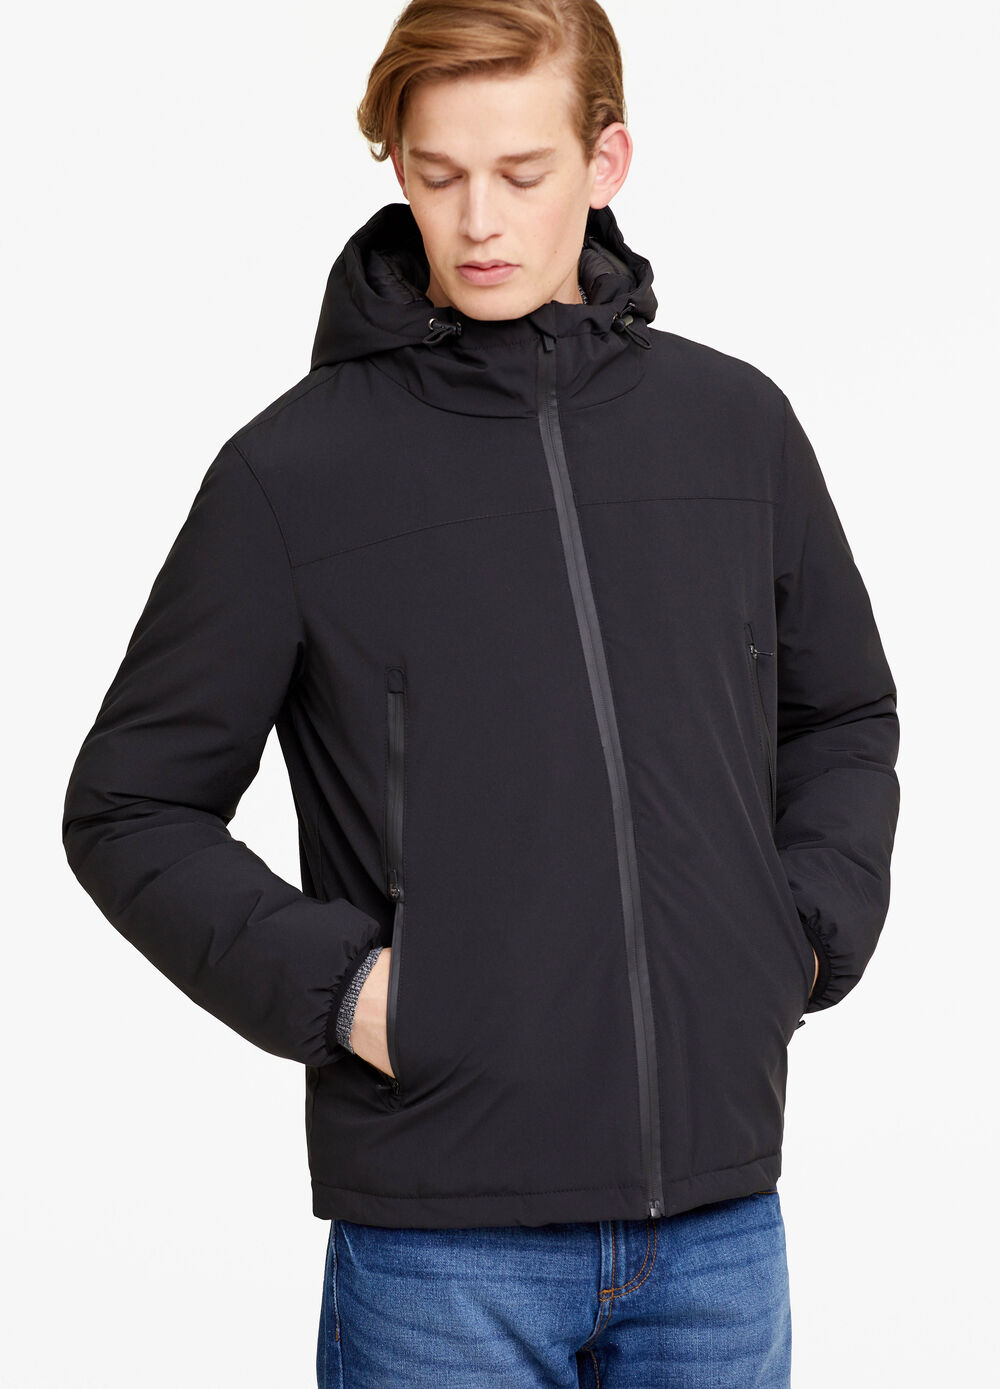 Stretch fabric jacket with zip